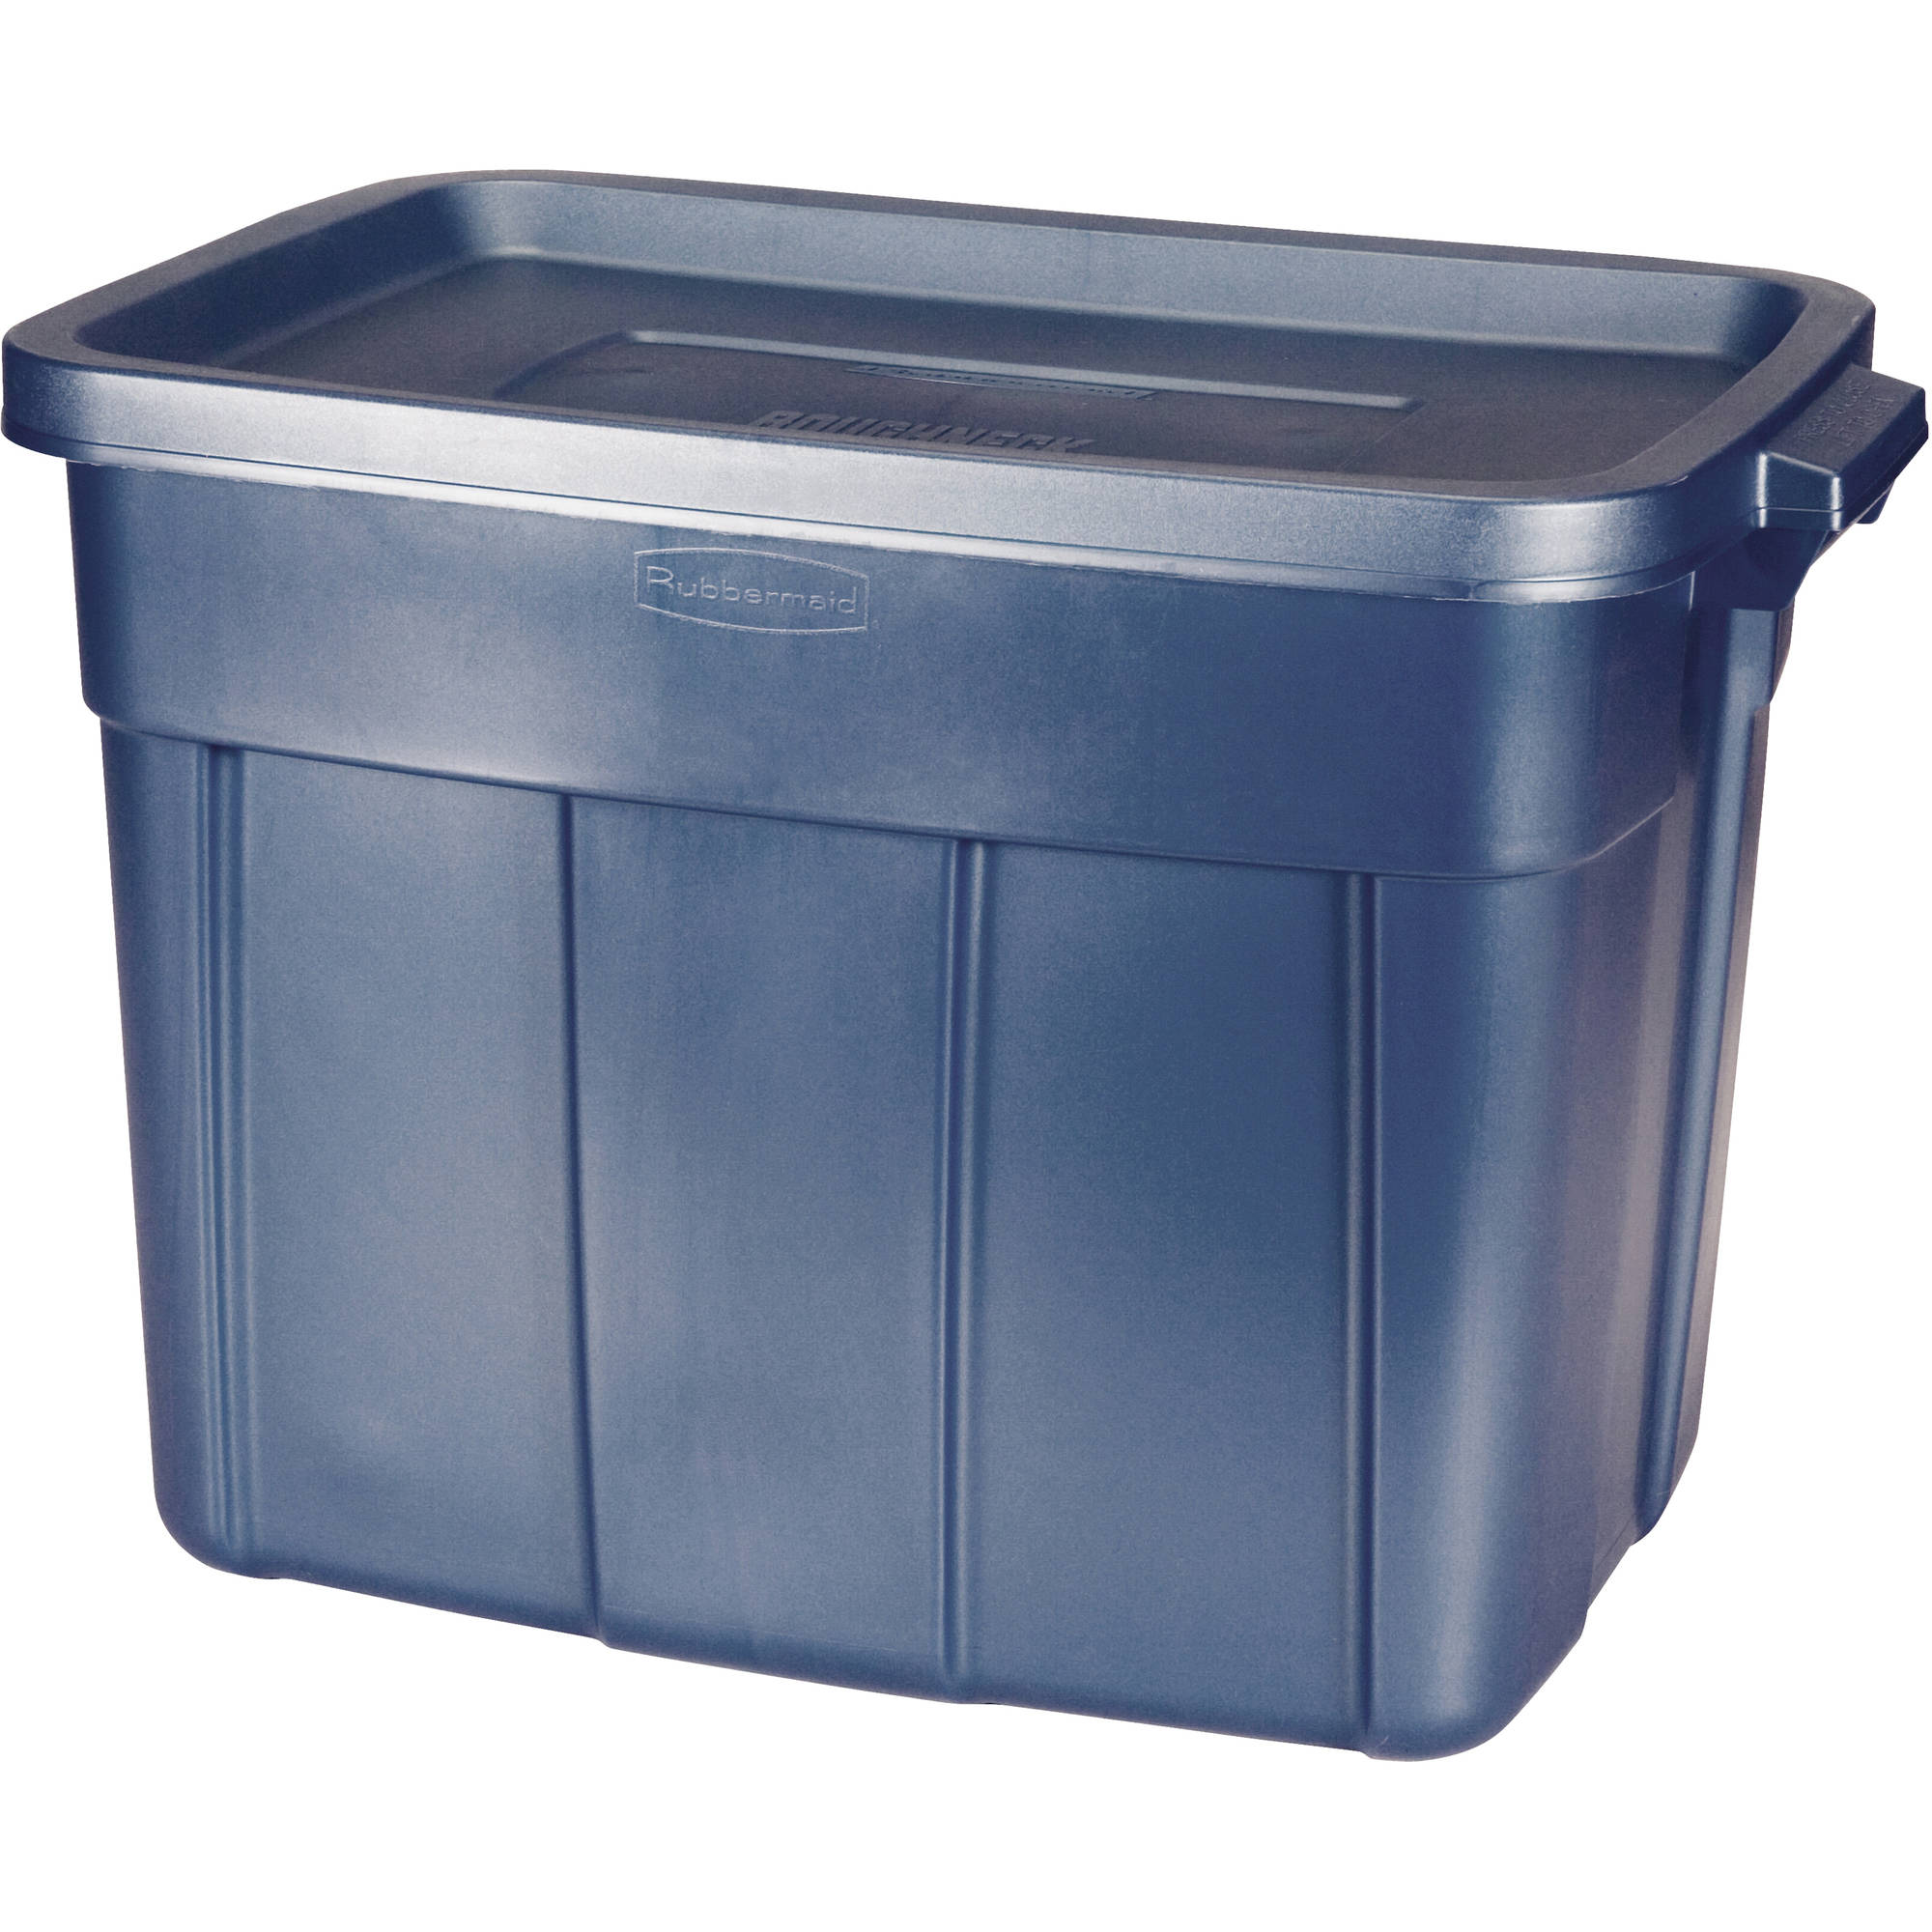 Rubbermaid Roughneck 18 Gal. Storage Box, Dark Indigo Metallic (Set of 12)